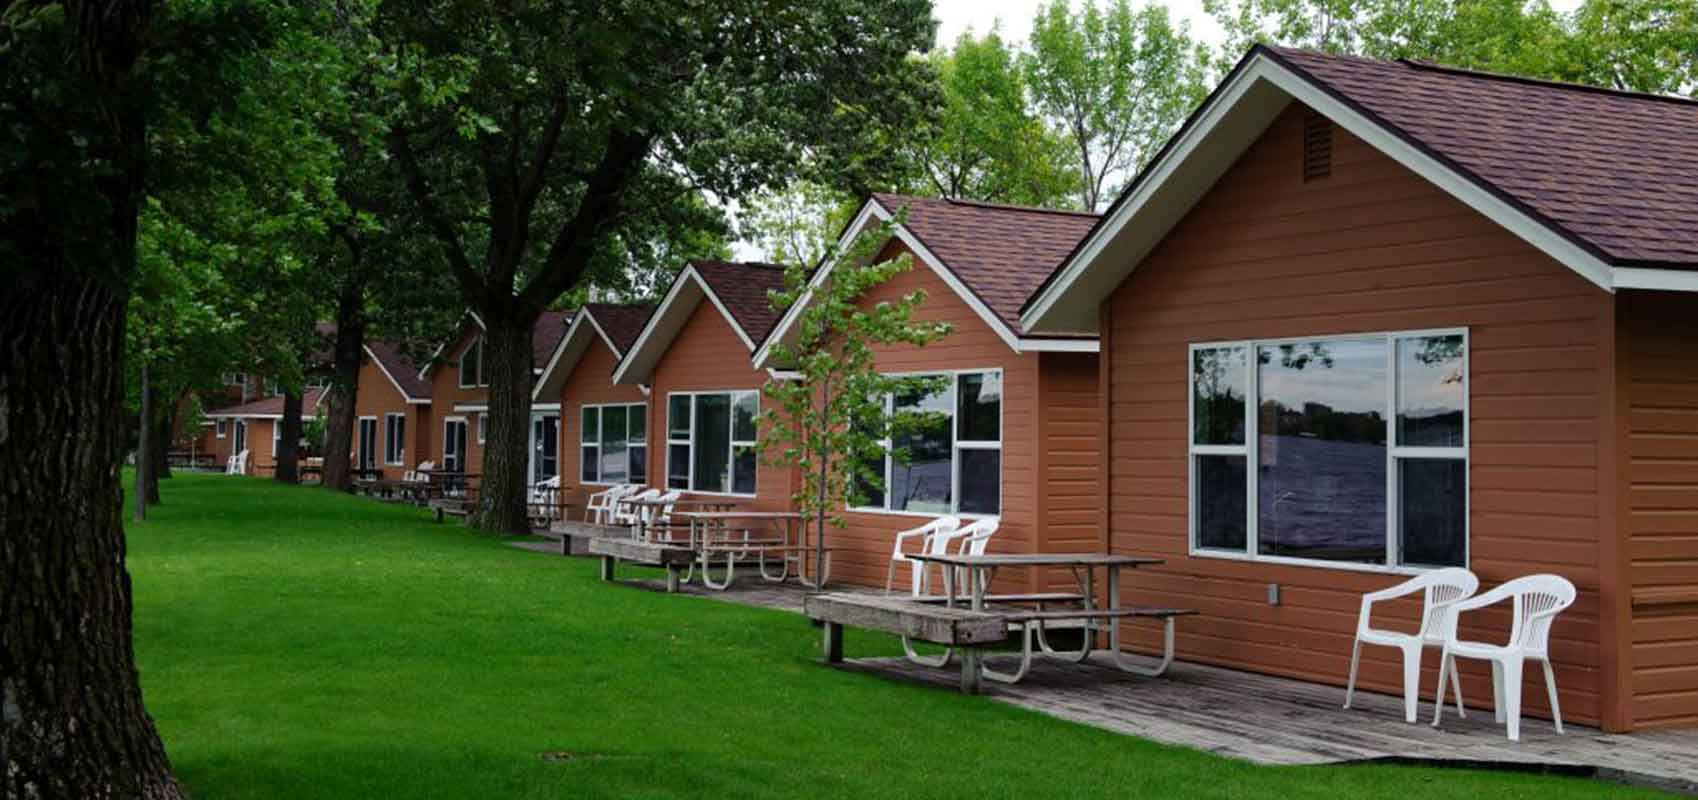 in lakeside for duluth homes rental mn minnesota cabins north vacation cabin lake shore cheap rent